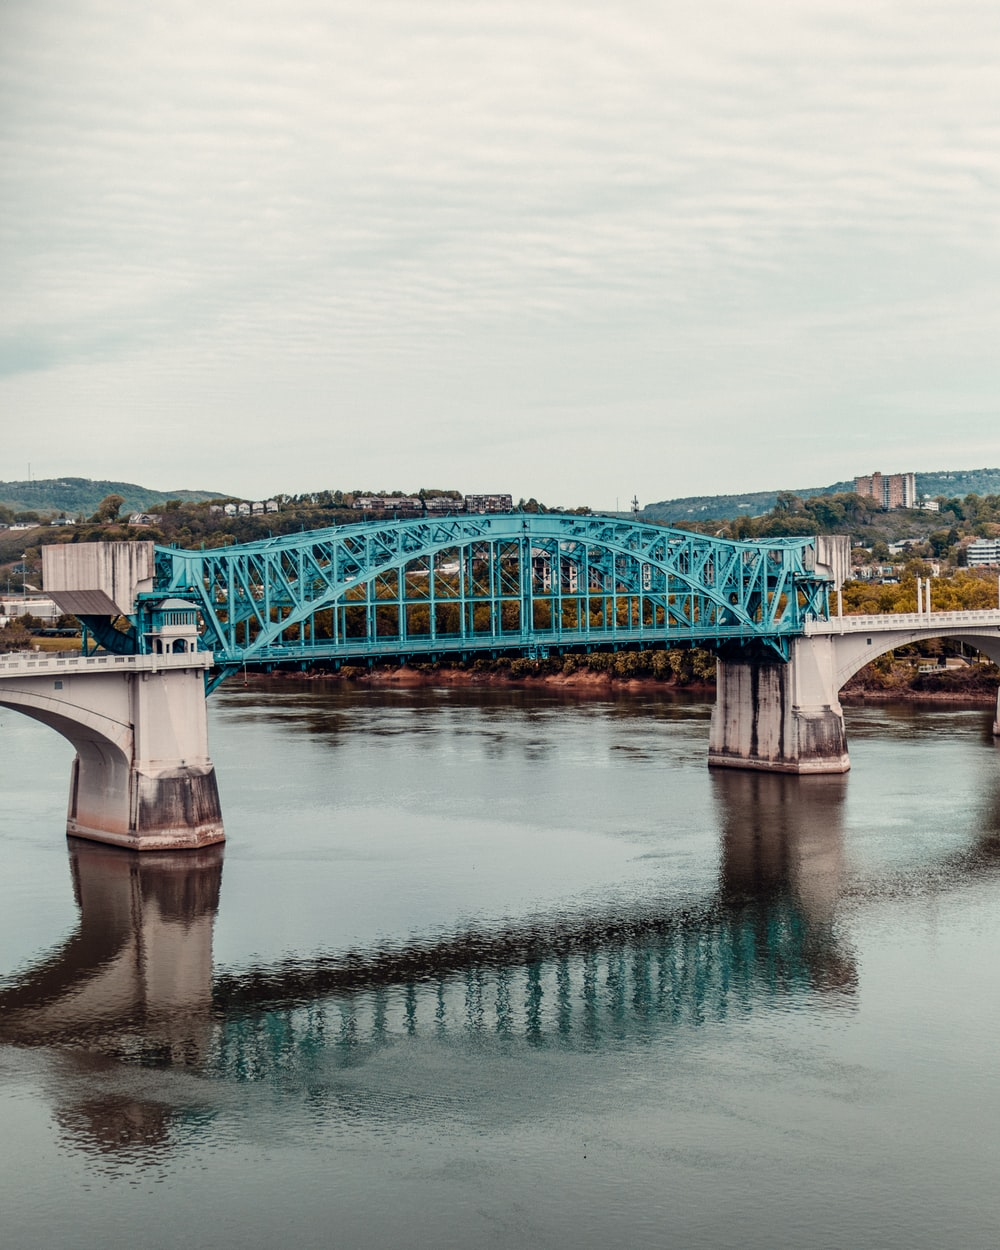 blue and white bridge over river under white clouds